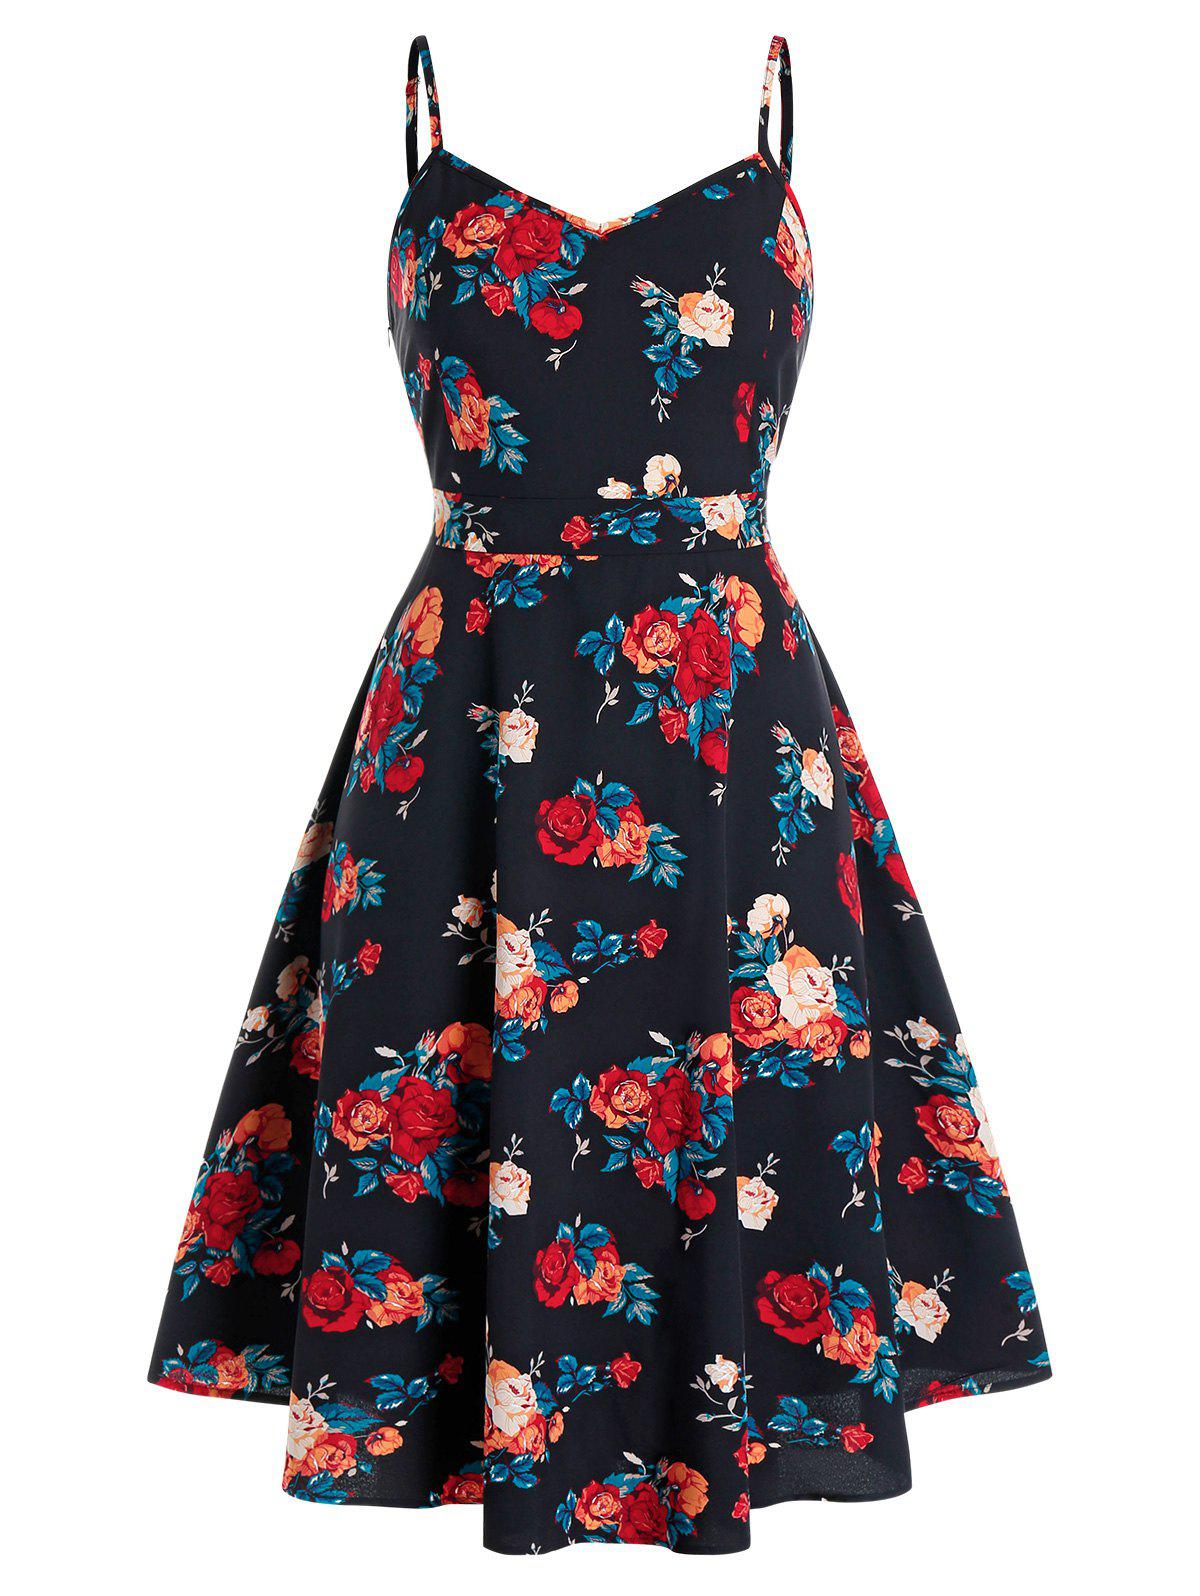 Plus Size Floral Printed A Line Slip Dress - BLACK 2X